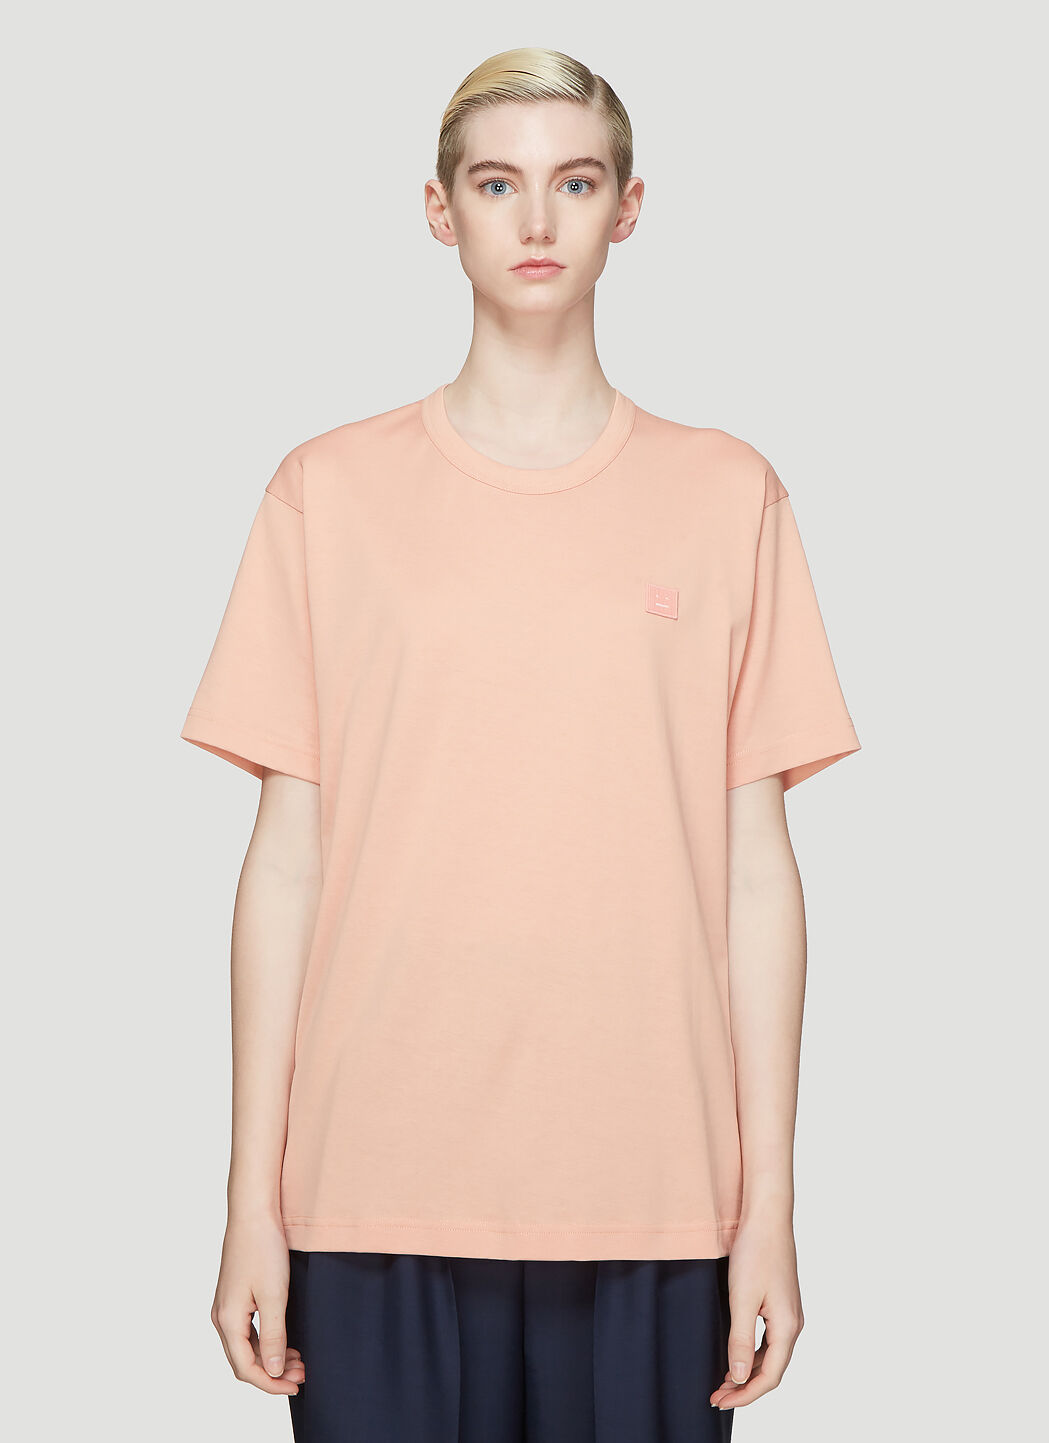 Nash Face Embroidered T-Shirt in Pink